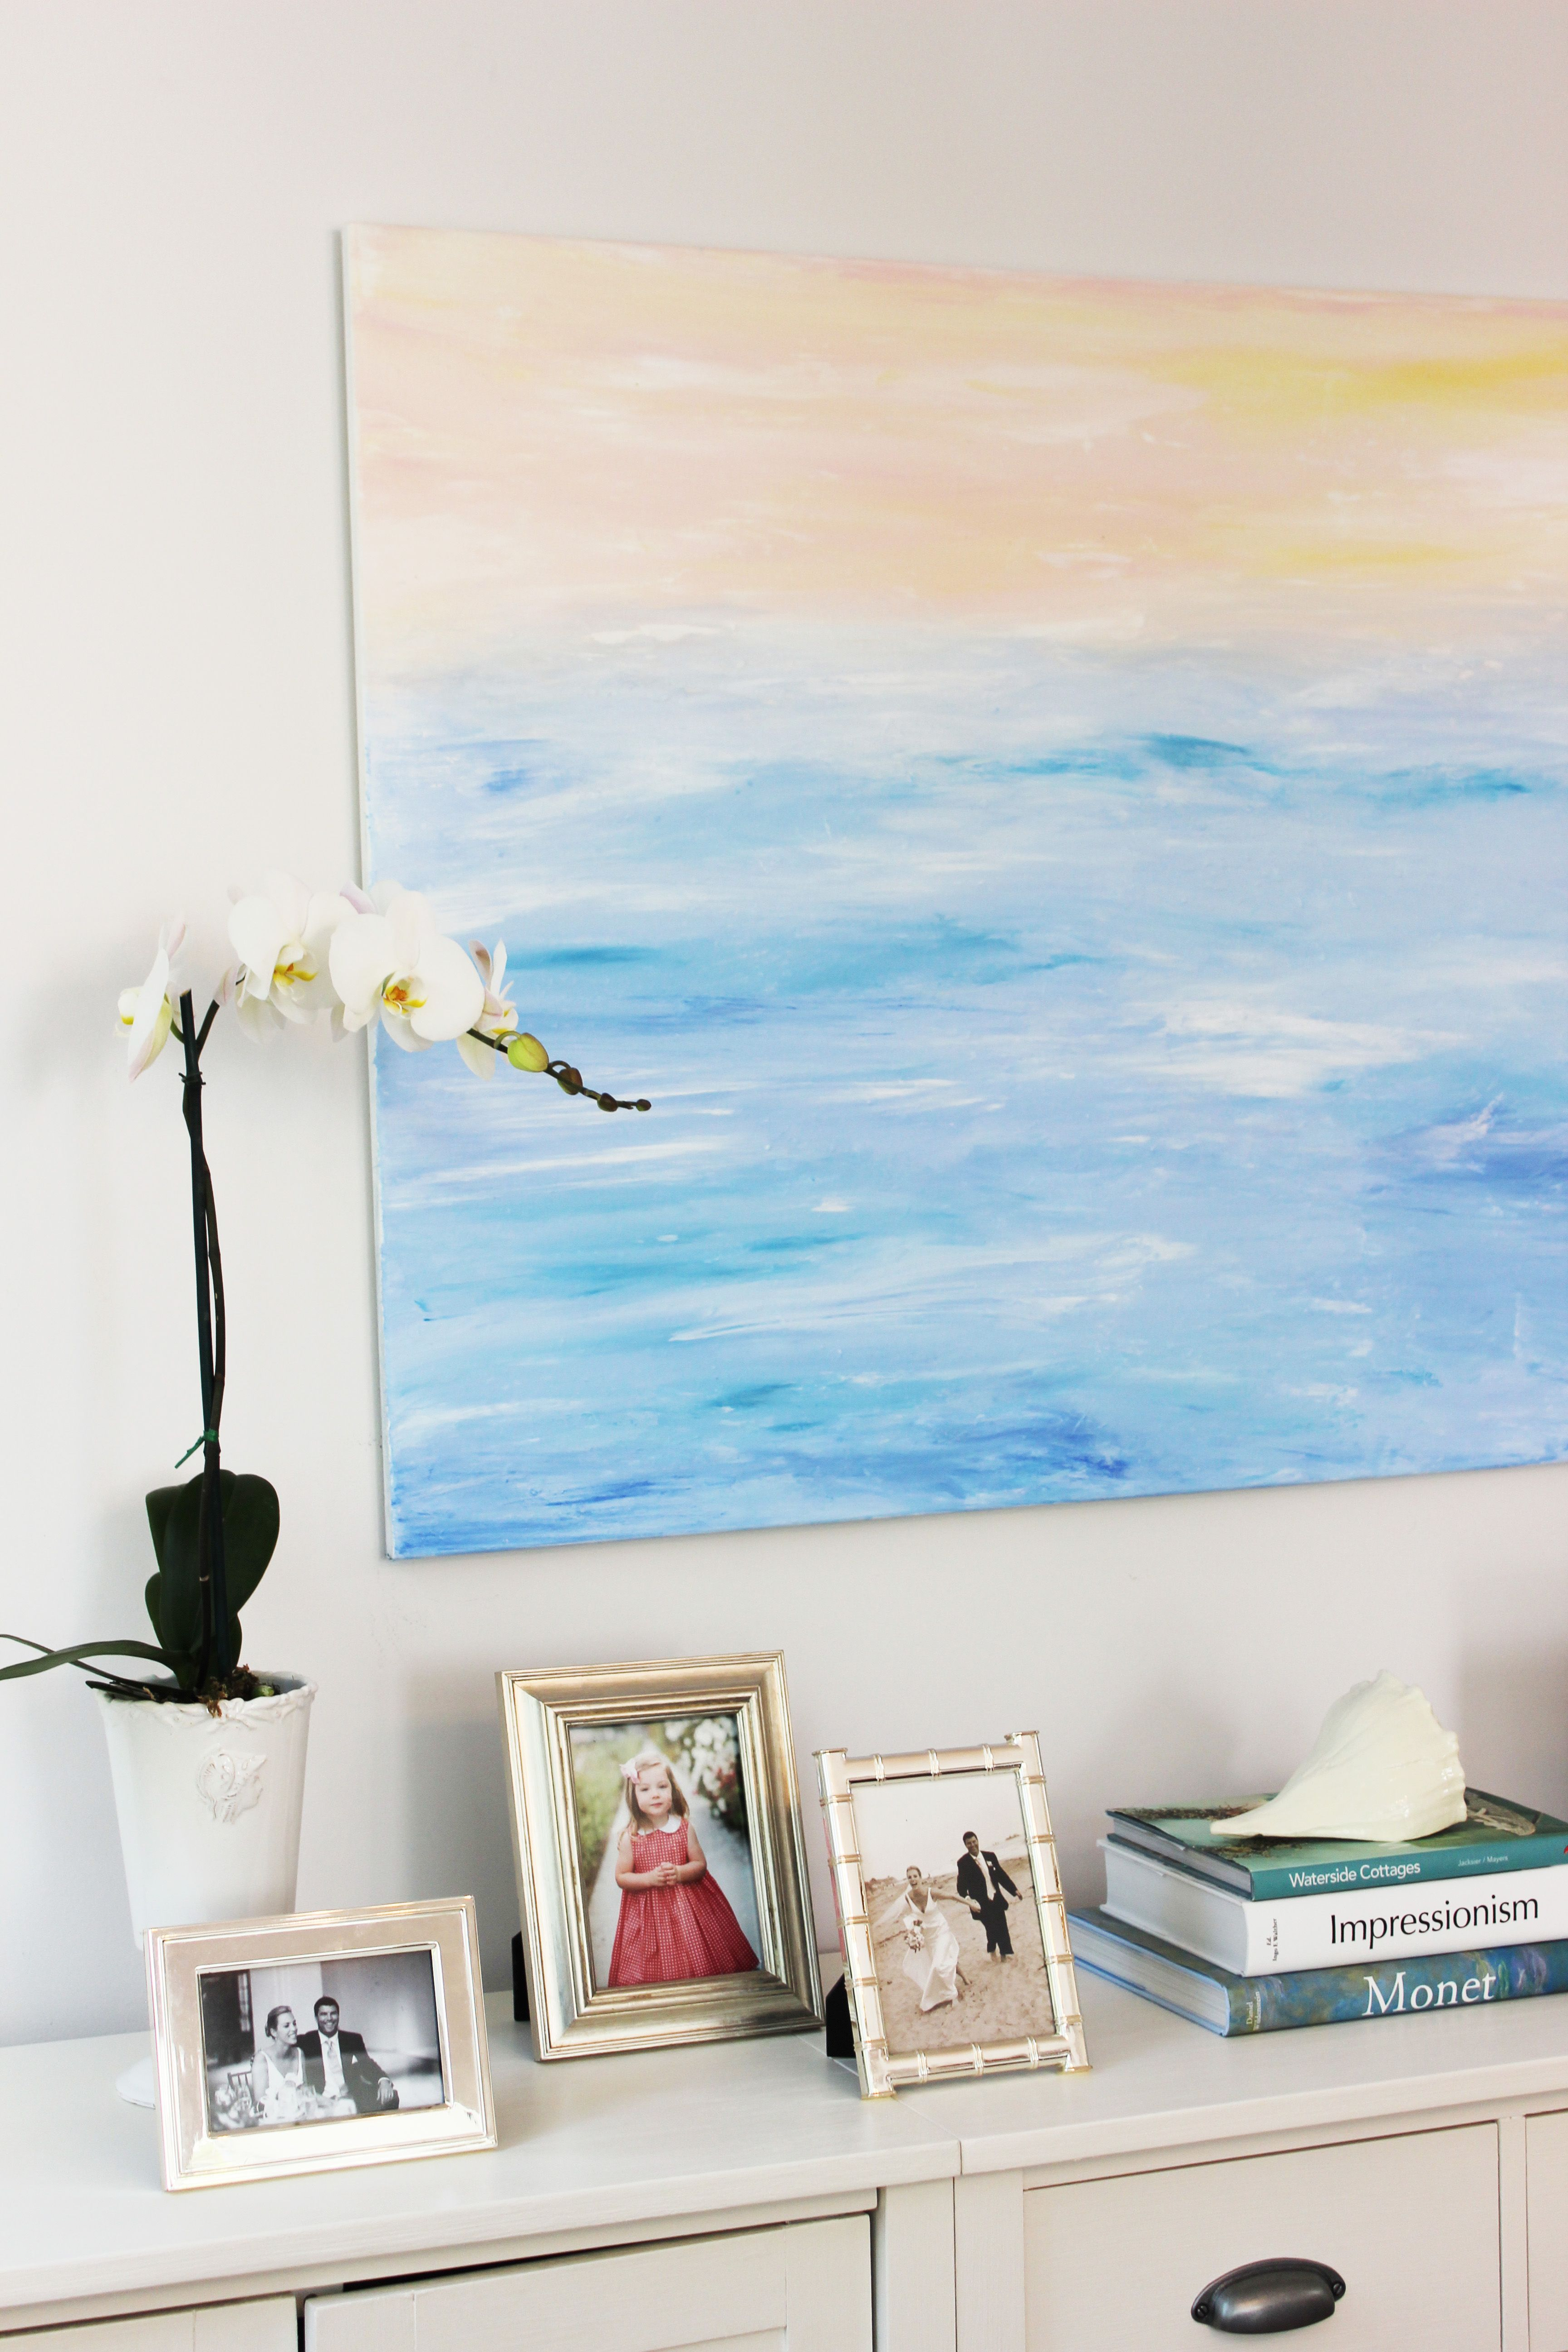 How To Make Your Own Abstract Art. A Simple Method For Creating DIY Big Wall